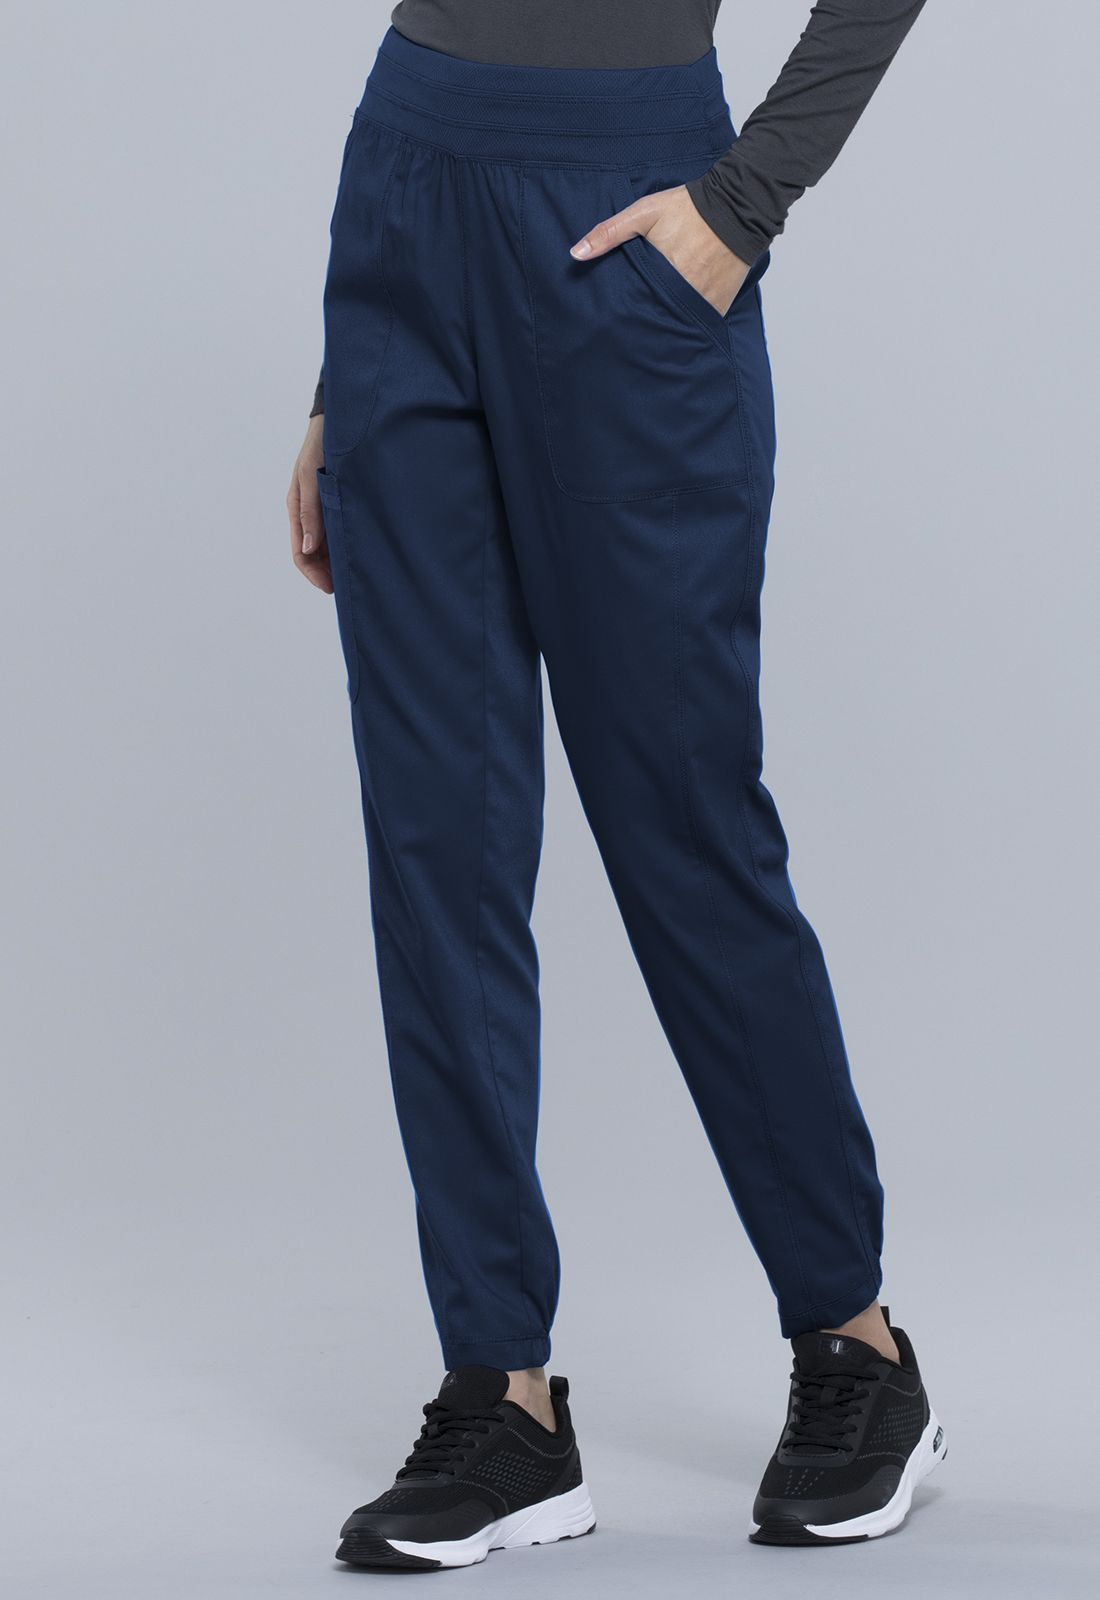 https://medcloth.by/images/stories/virtuemart/product/ww011-navy-2.jpg